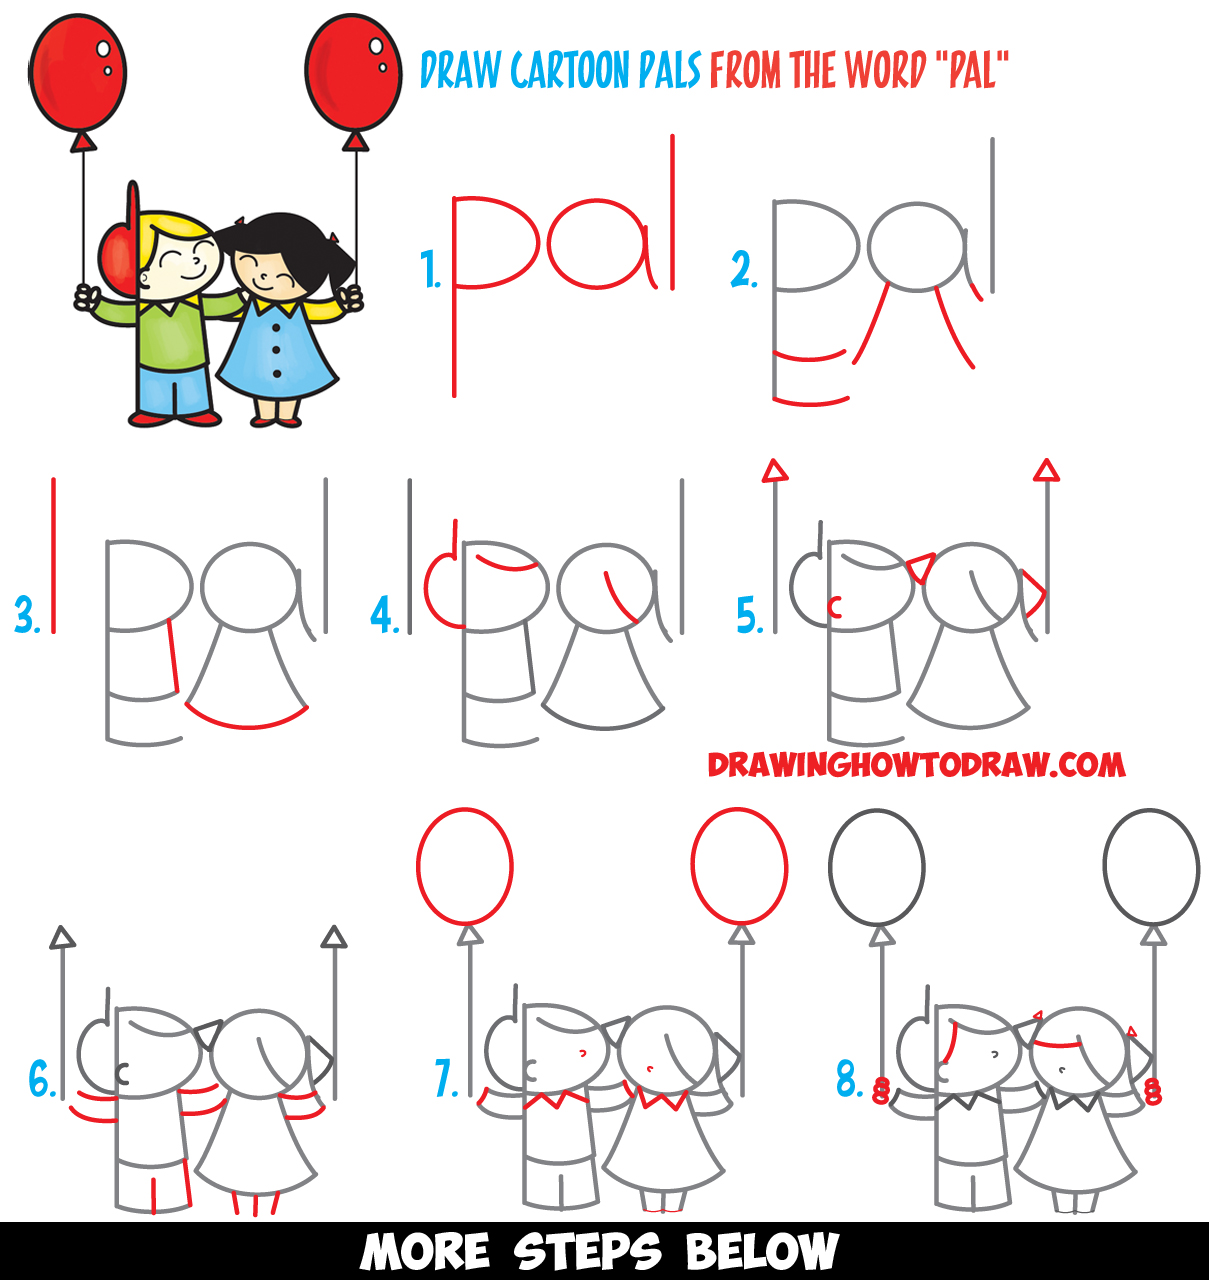 "How to Draw 2 Cartoon Friends or Pals from the Word ""Pal"" Word Toon Easy Step by Step Drawing Tutorial for Kids"